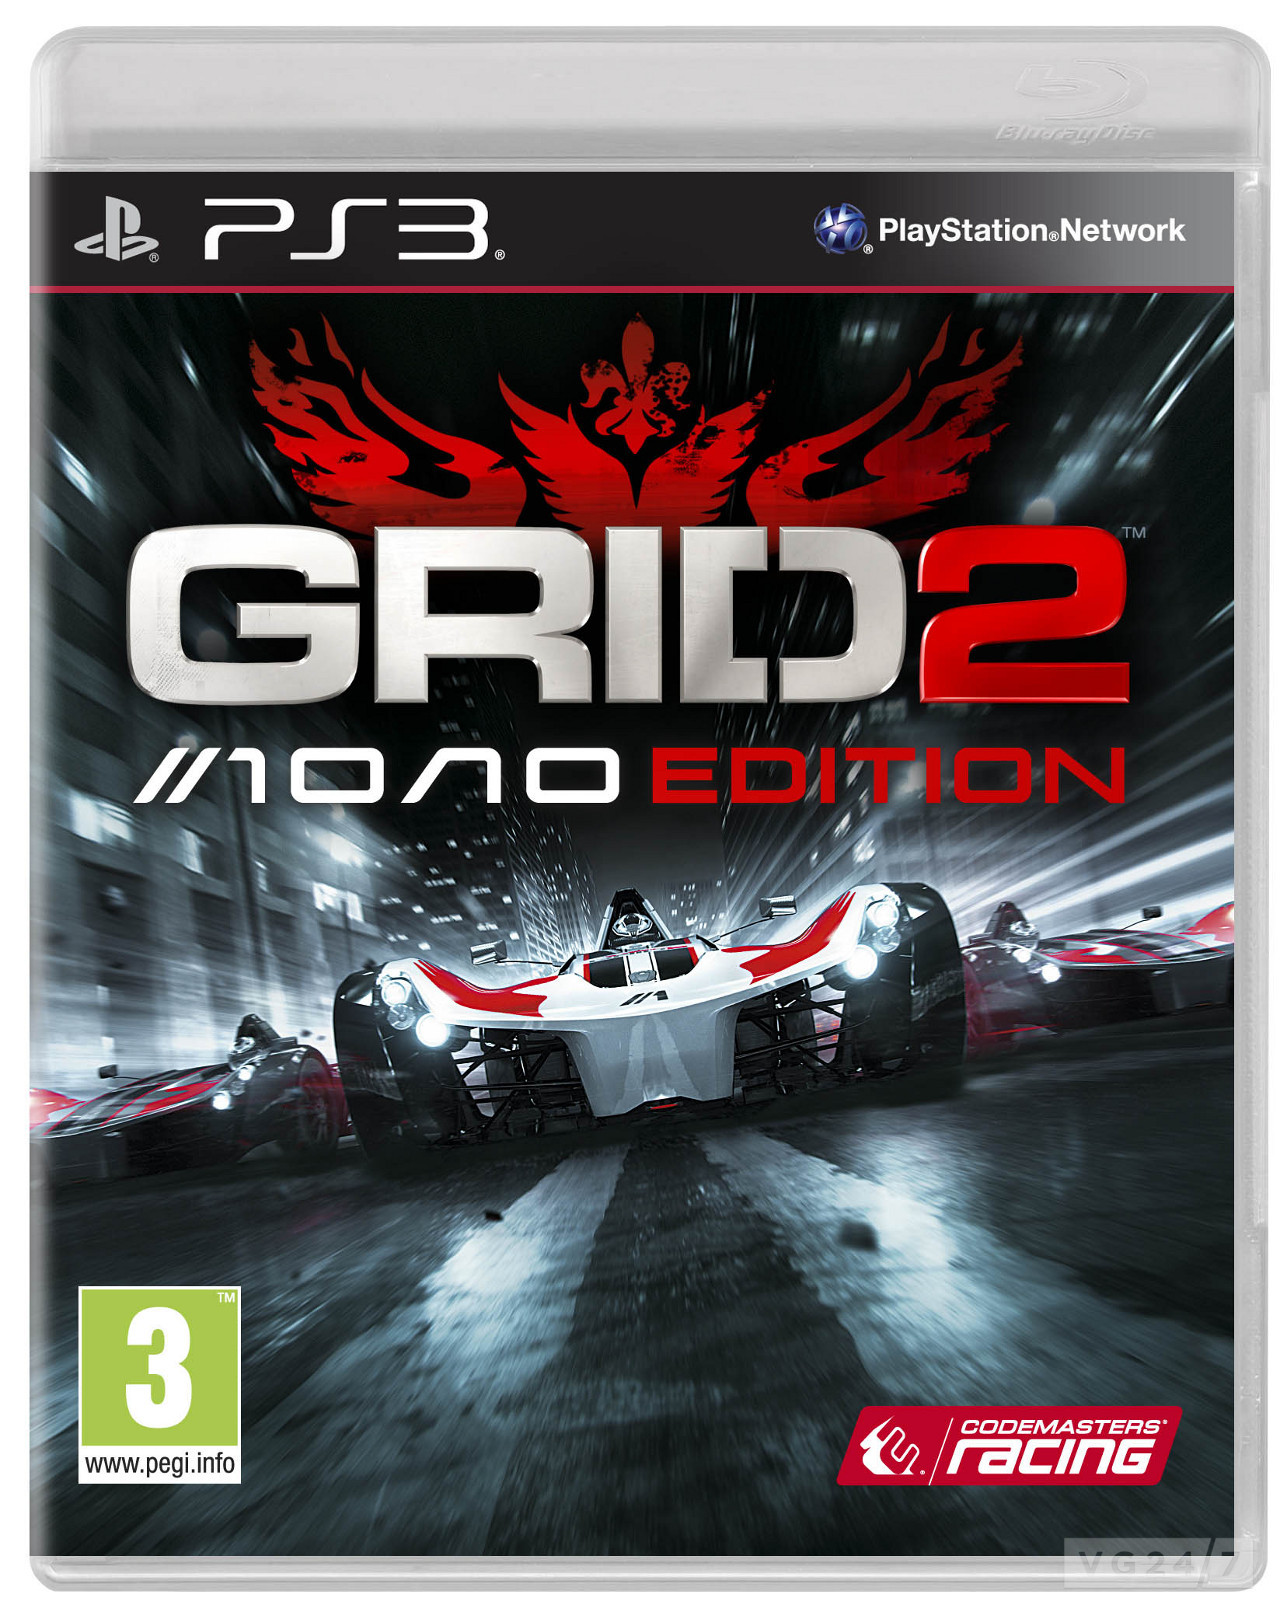 Video Game Girl Stock Image Image Of Latina Isolated: GRID 2: £125,000 Mono Edition Comes With An Actual Car